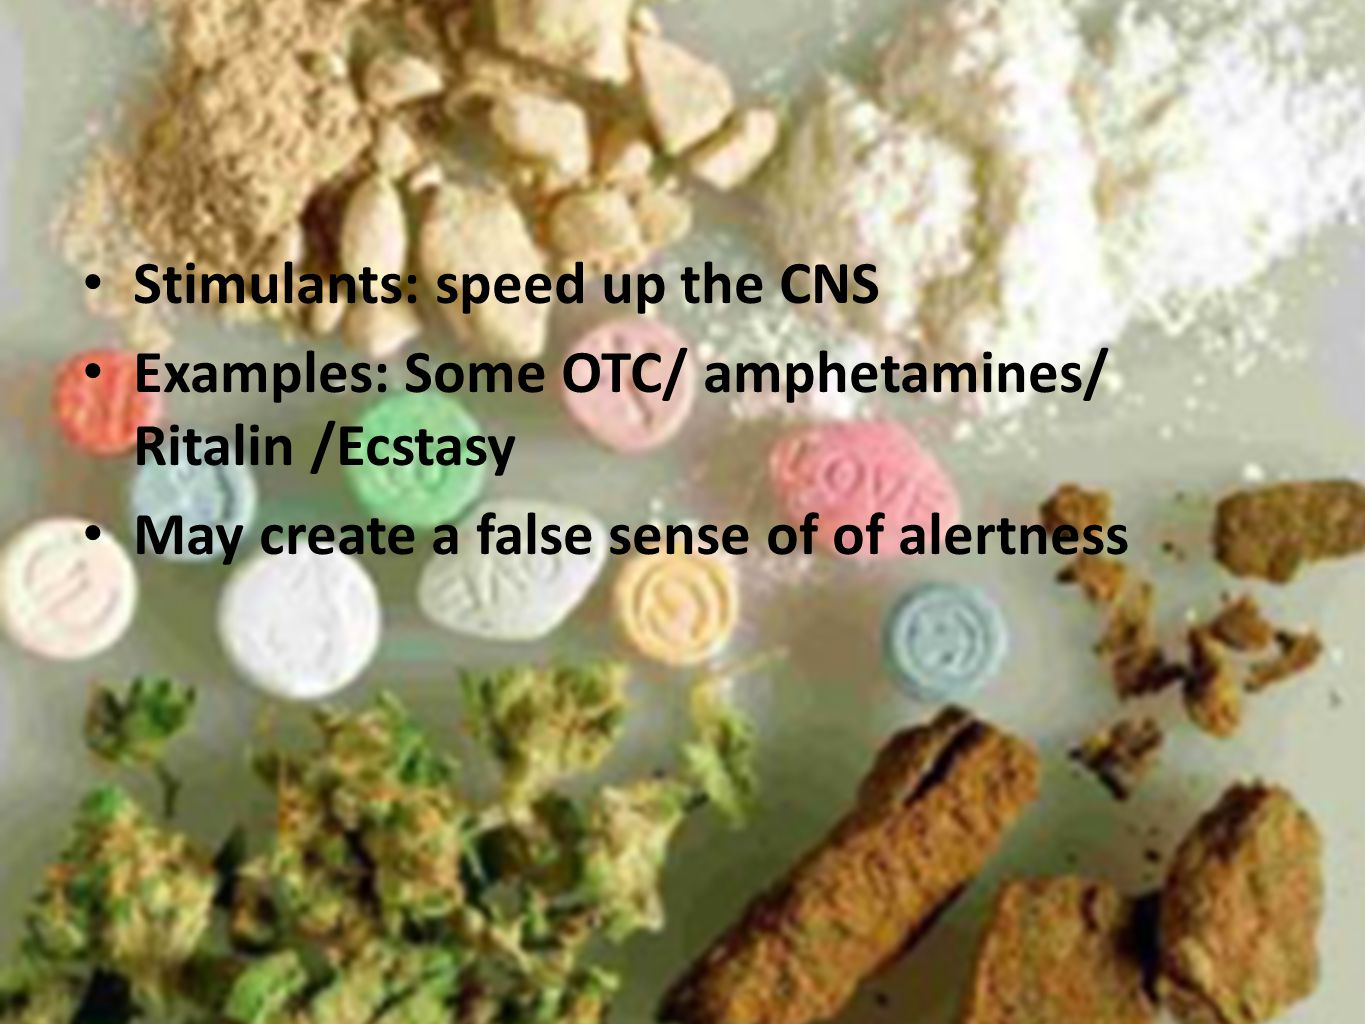 Stimulants: speed up the CNS Examples: Some OTC/ amphetamines/ Ritalin /Ecstasy May create a false sense of of alertness